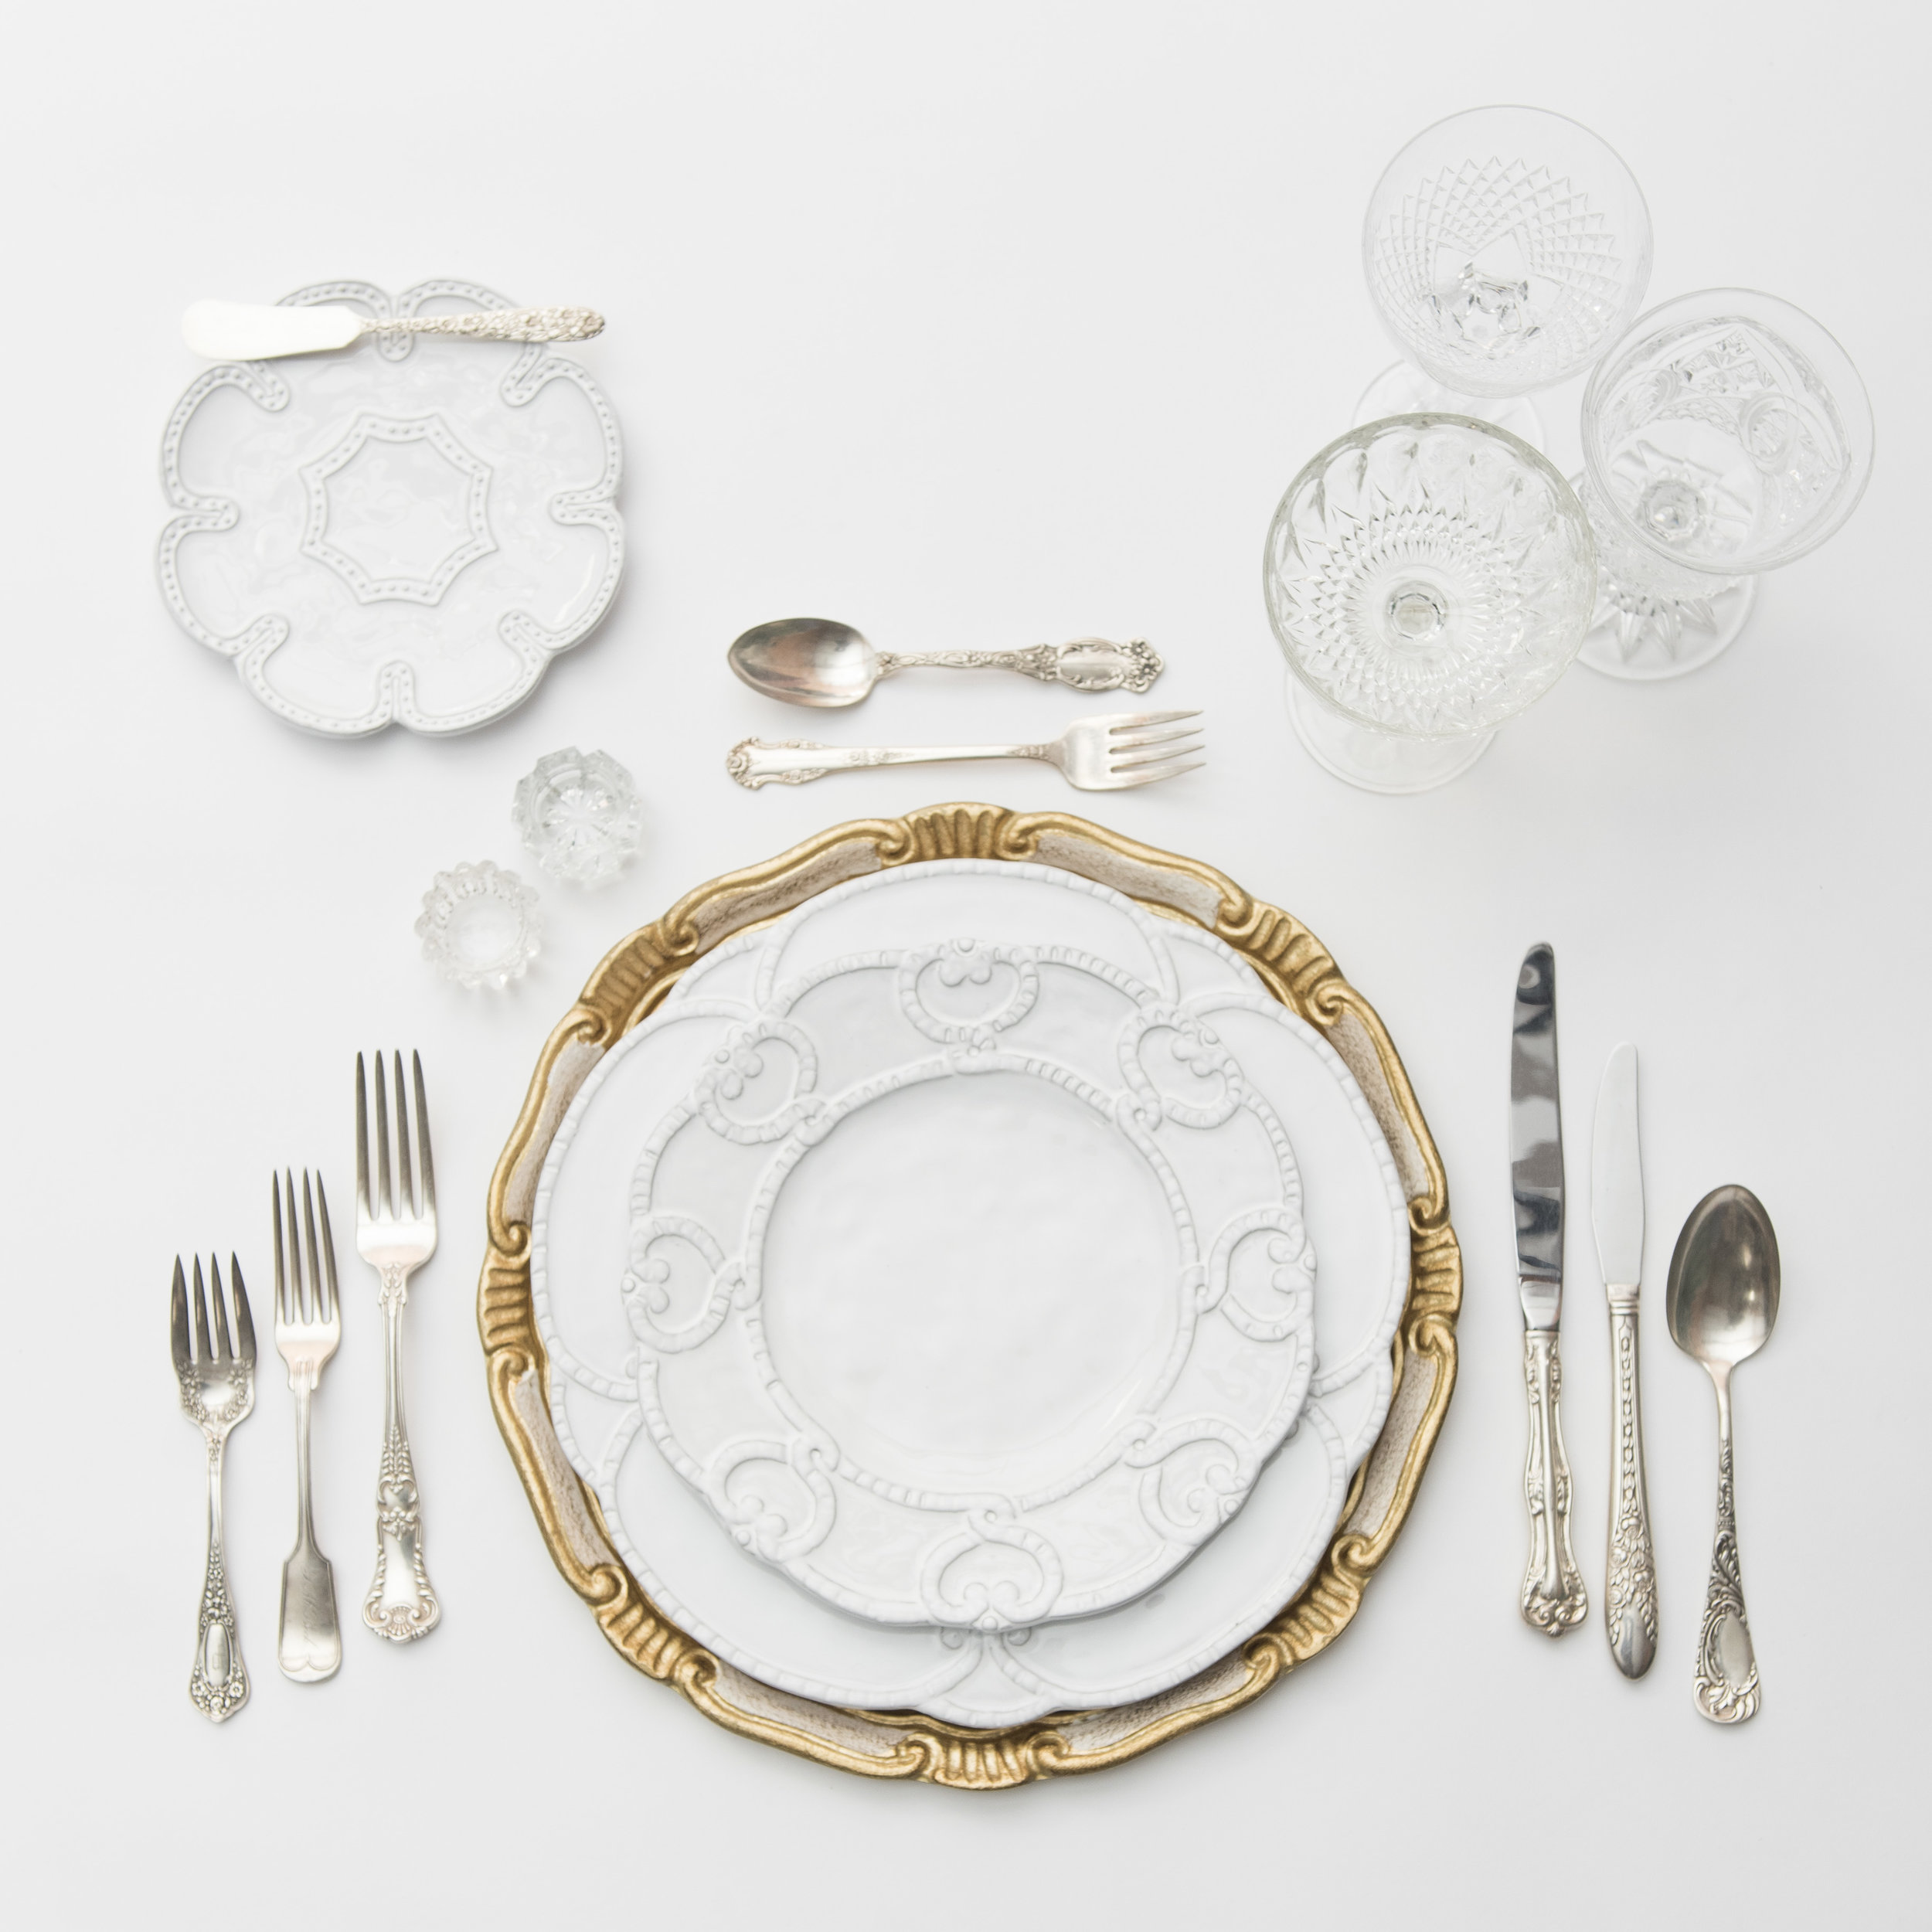 RENT: Florentine Chargers in White/Gold + Signature Collection Dinnerware + Antique Silver Flatware + Vintage Cut Crystal Goblets + Early American Pressed Glass Goblets + Vintage Champagne Coupes + Antique Crystal Salt Cellars   SHOP: Florentine Chargers in White/Gold